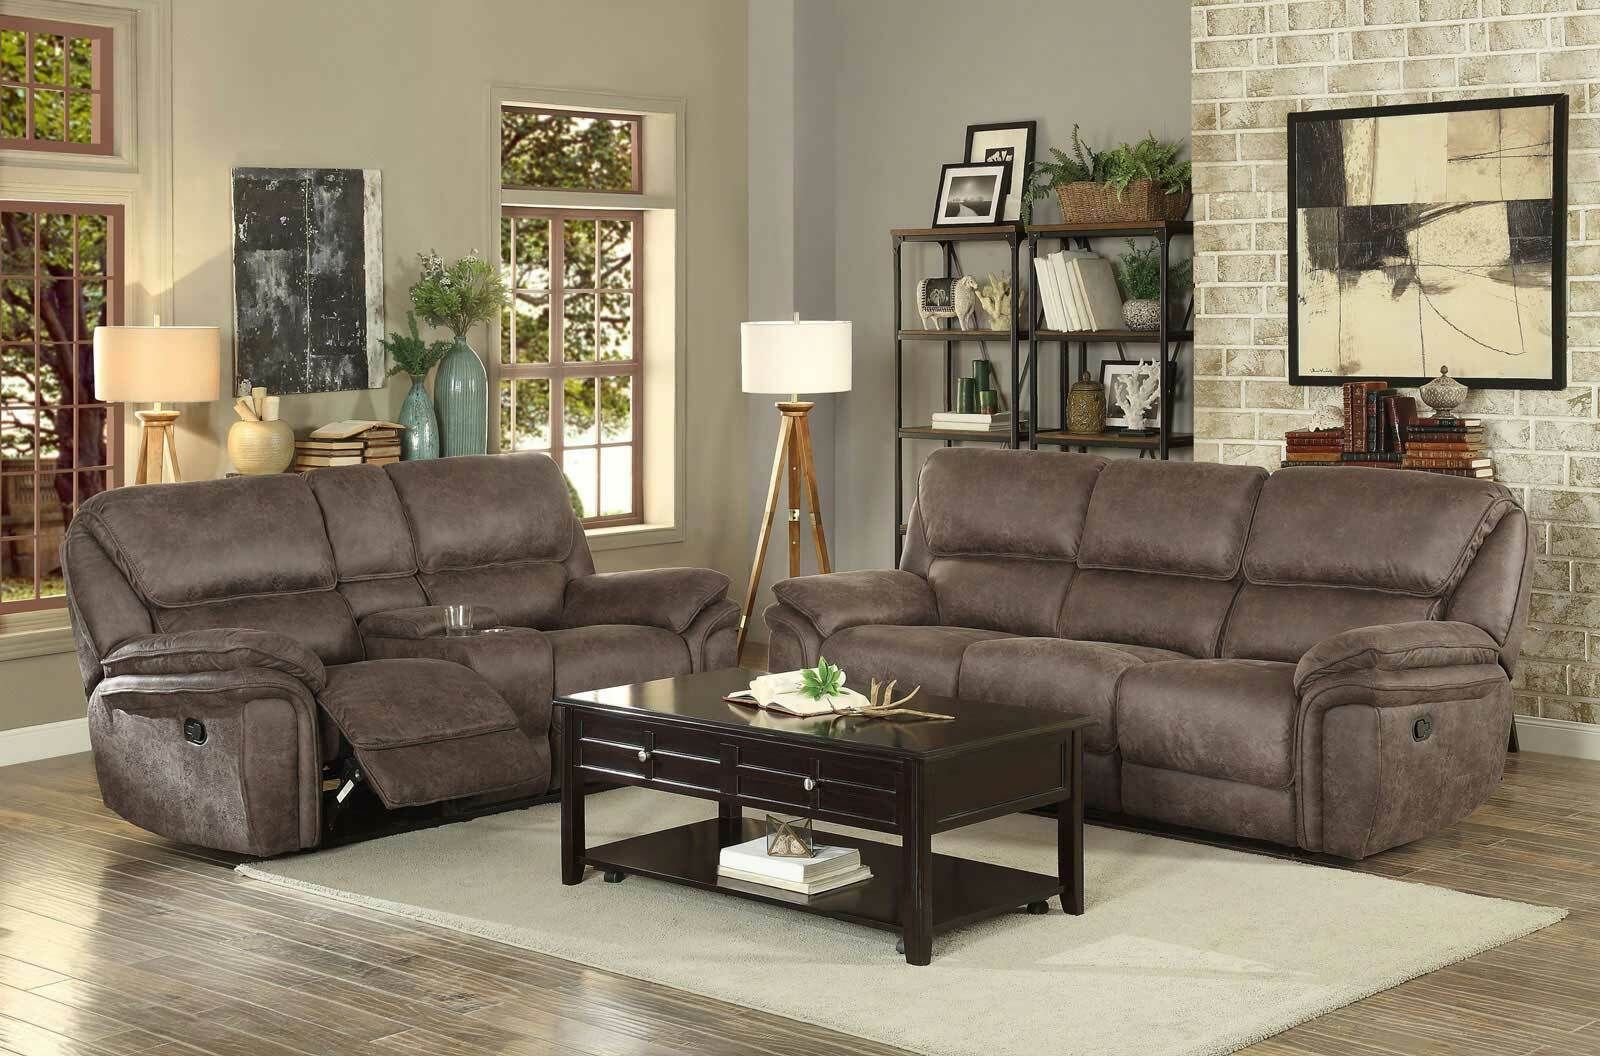 New Living Room Brown Fabric Reclining Sofa Couch Set With